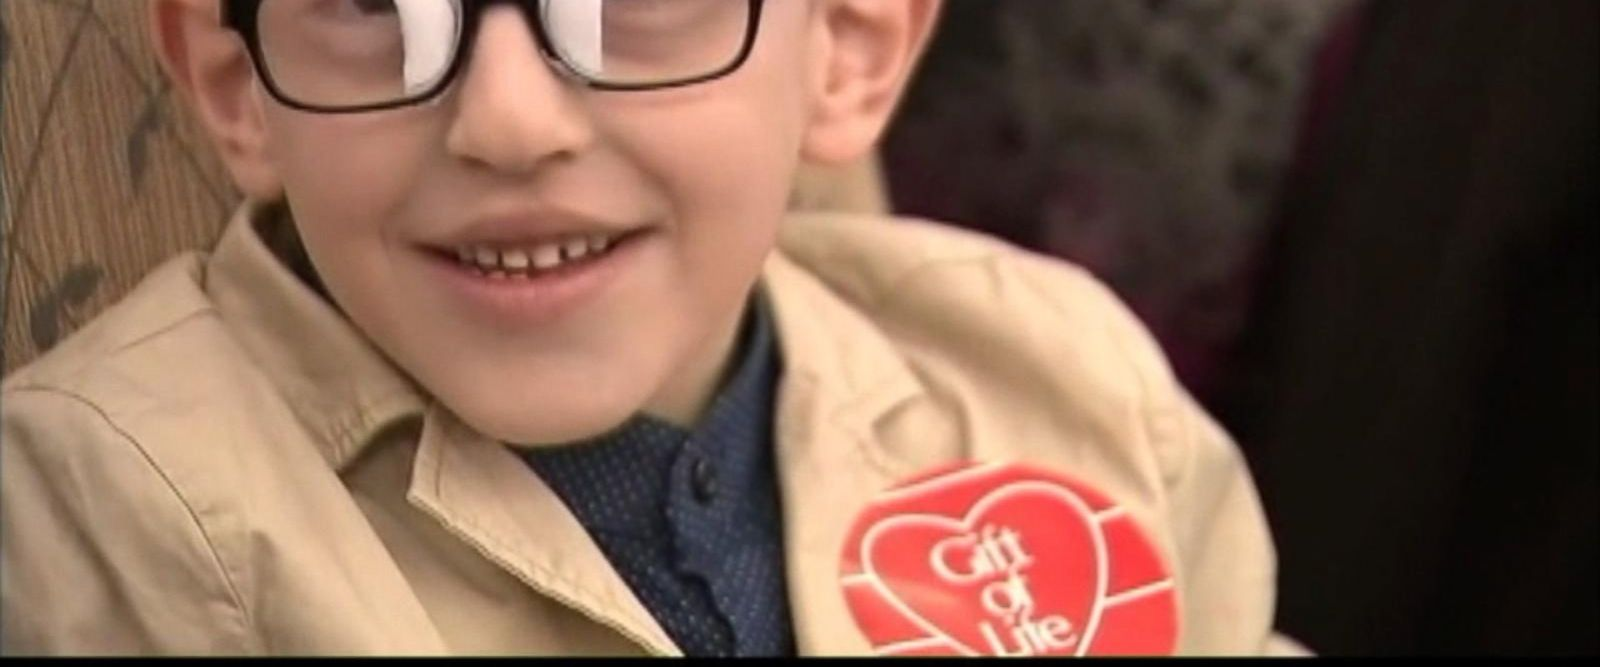 VIDEO: A little boy from Kosovo travels to New York for life-changing heart surgery